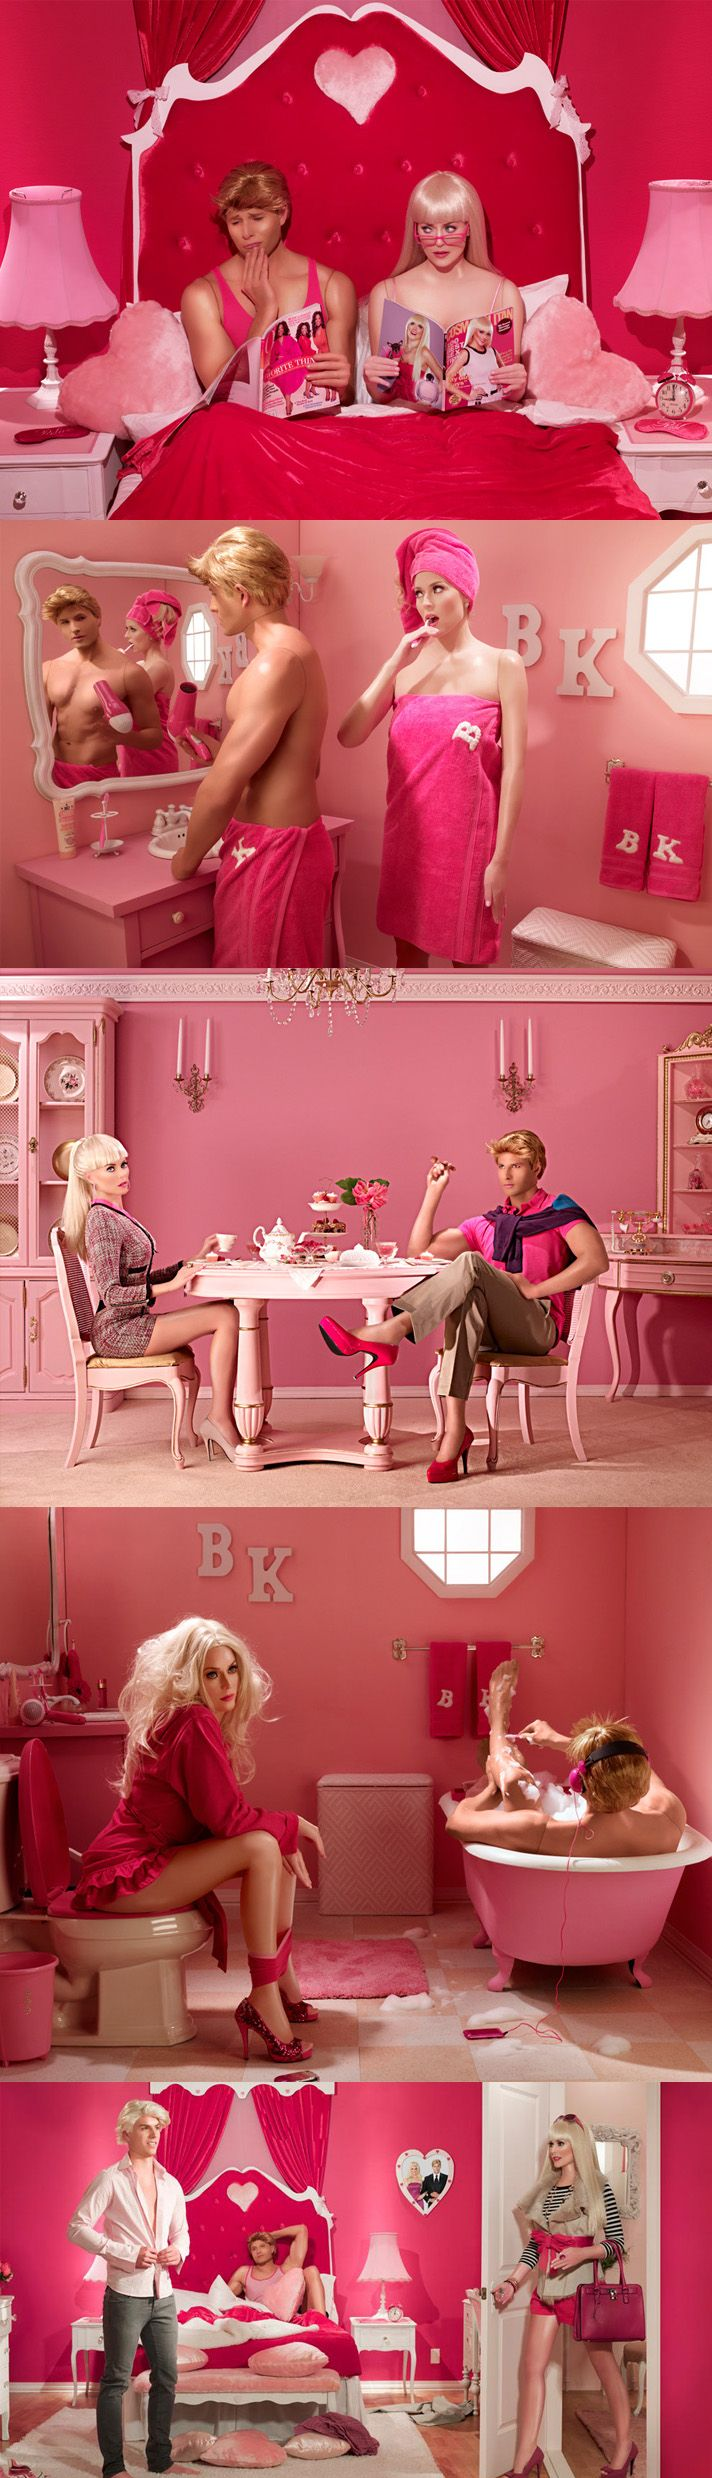 """Check out this amazing photoshoot by Dina Goldstein she titled """"In The Dollhouse."""""""